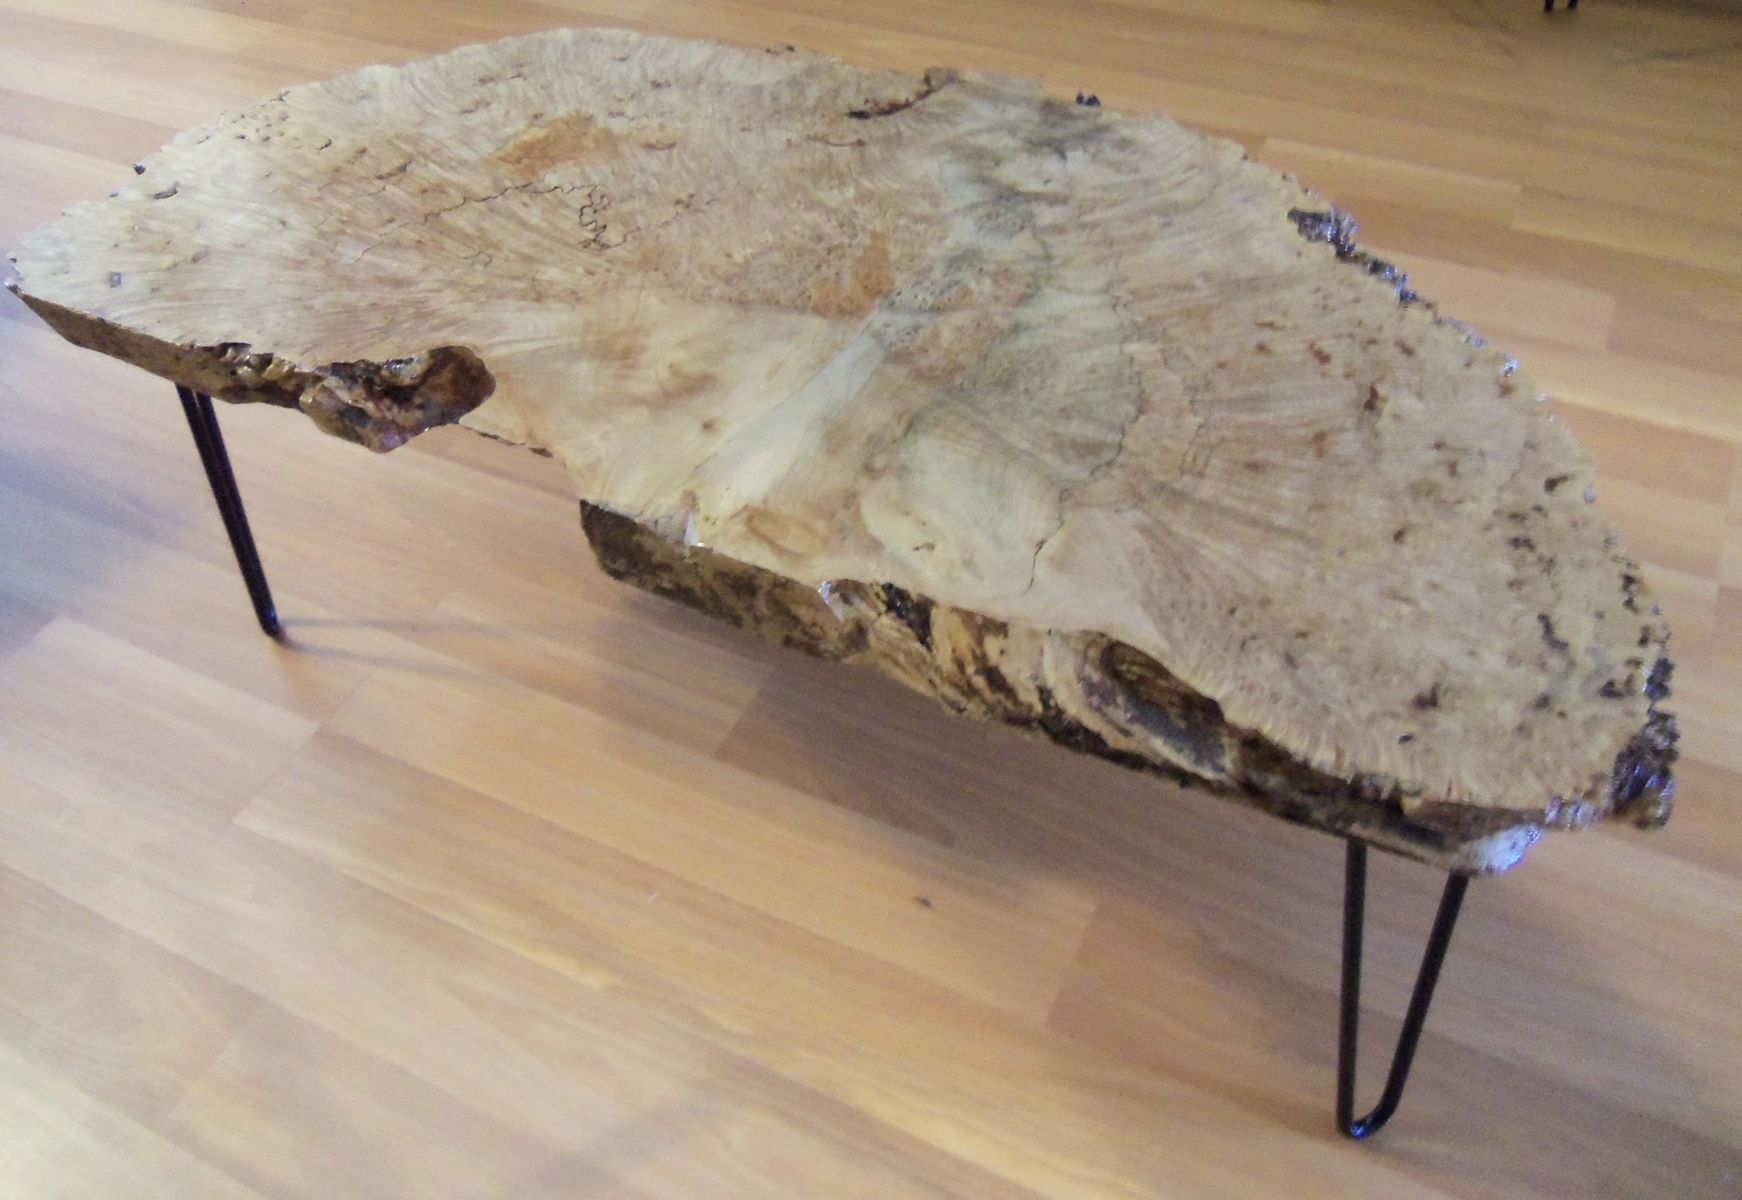 Handmade Coffee Table Big Leaf Maple Burl by Ozma Design